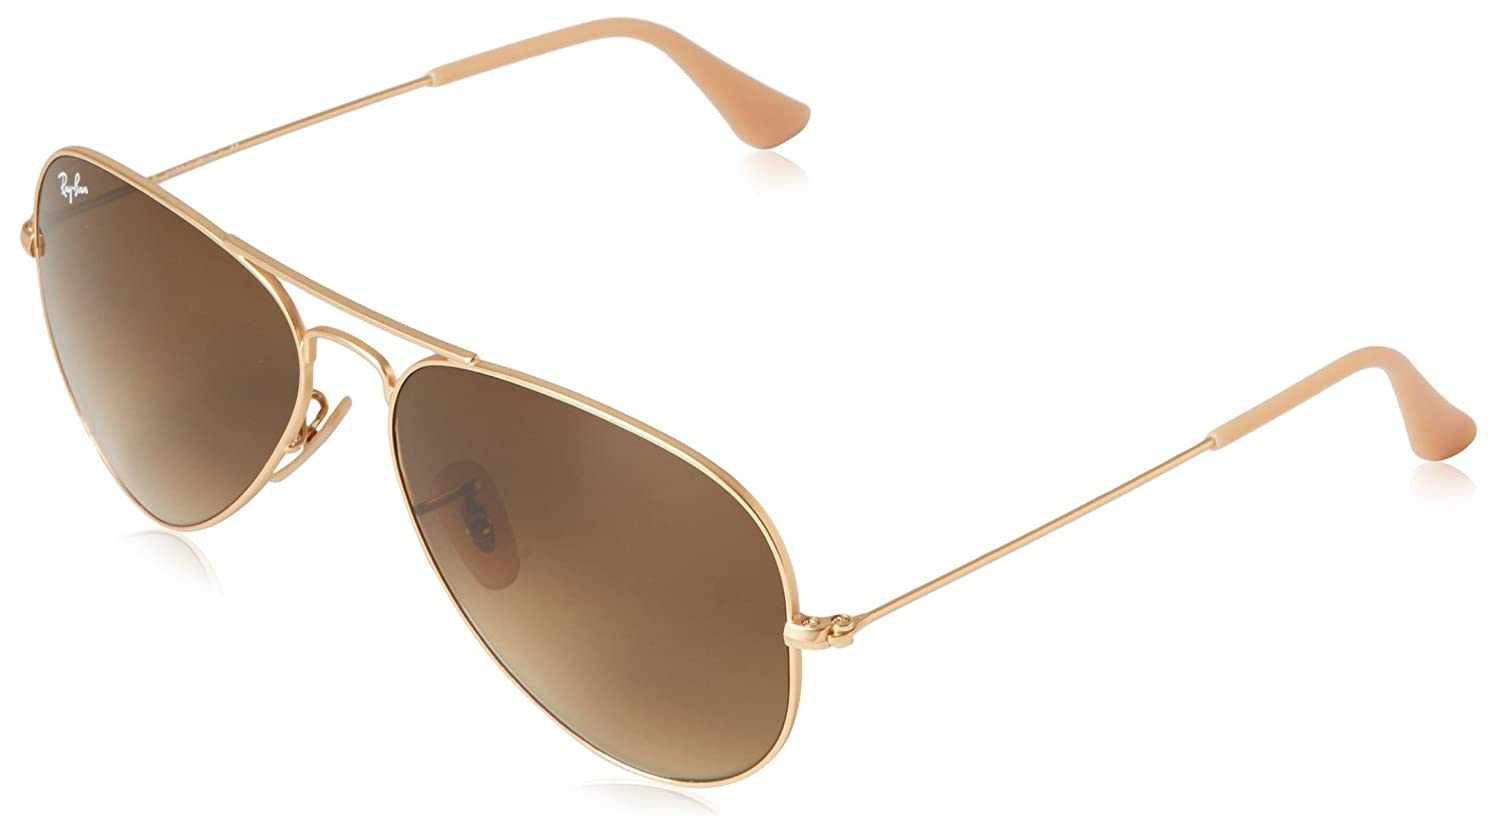 Ray Ban Aviator Large Metal Gafas de Sol Unisex Adulto Transparente Crystal